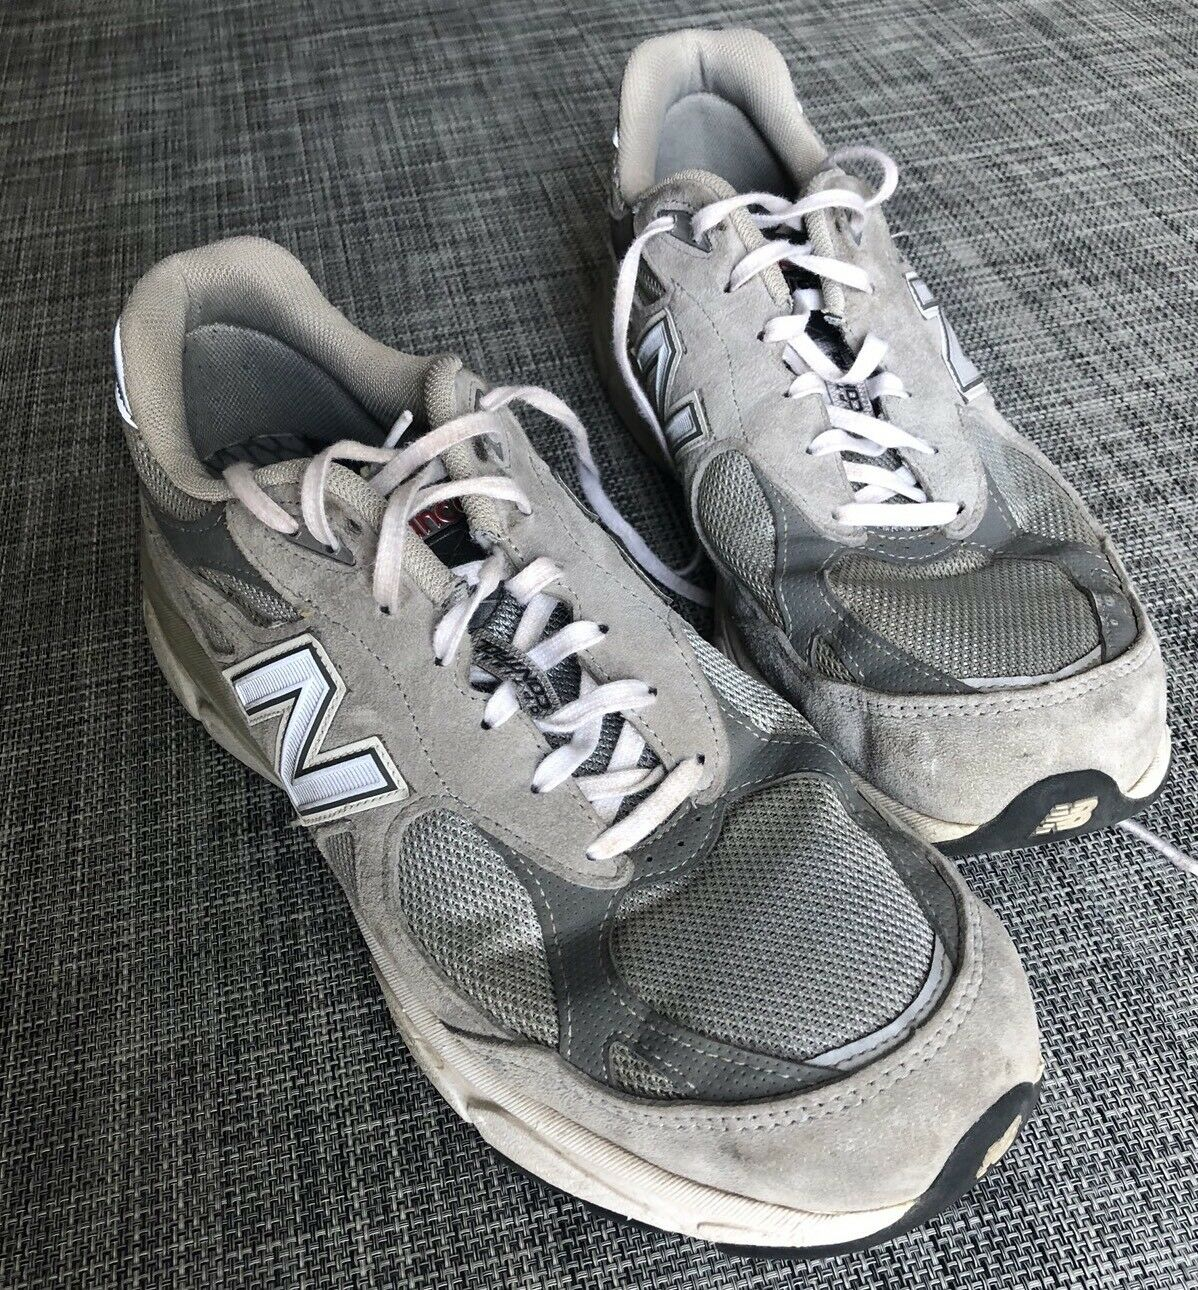 New Balance 990 Sneakers - Men's 12